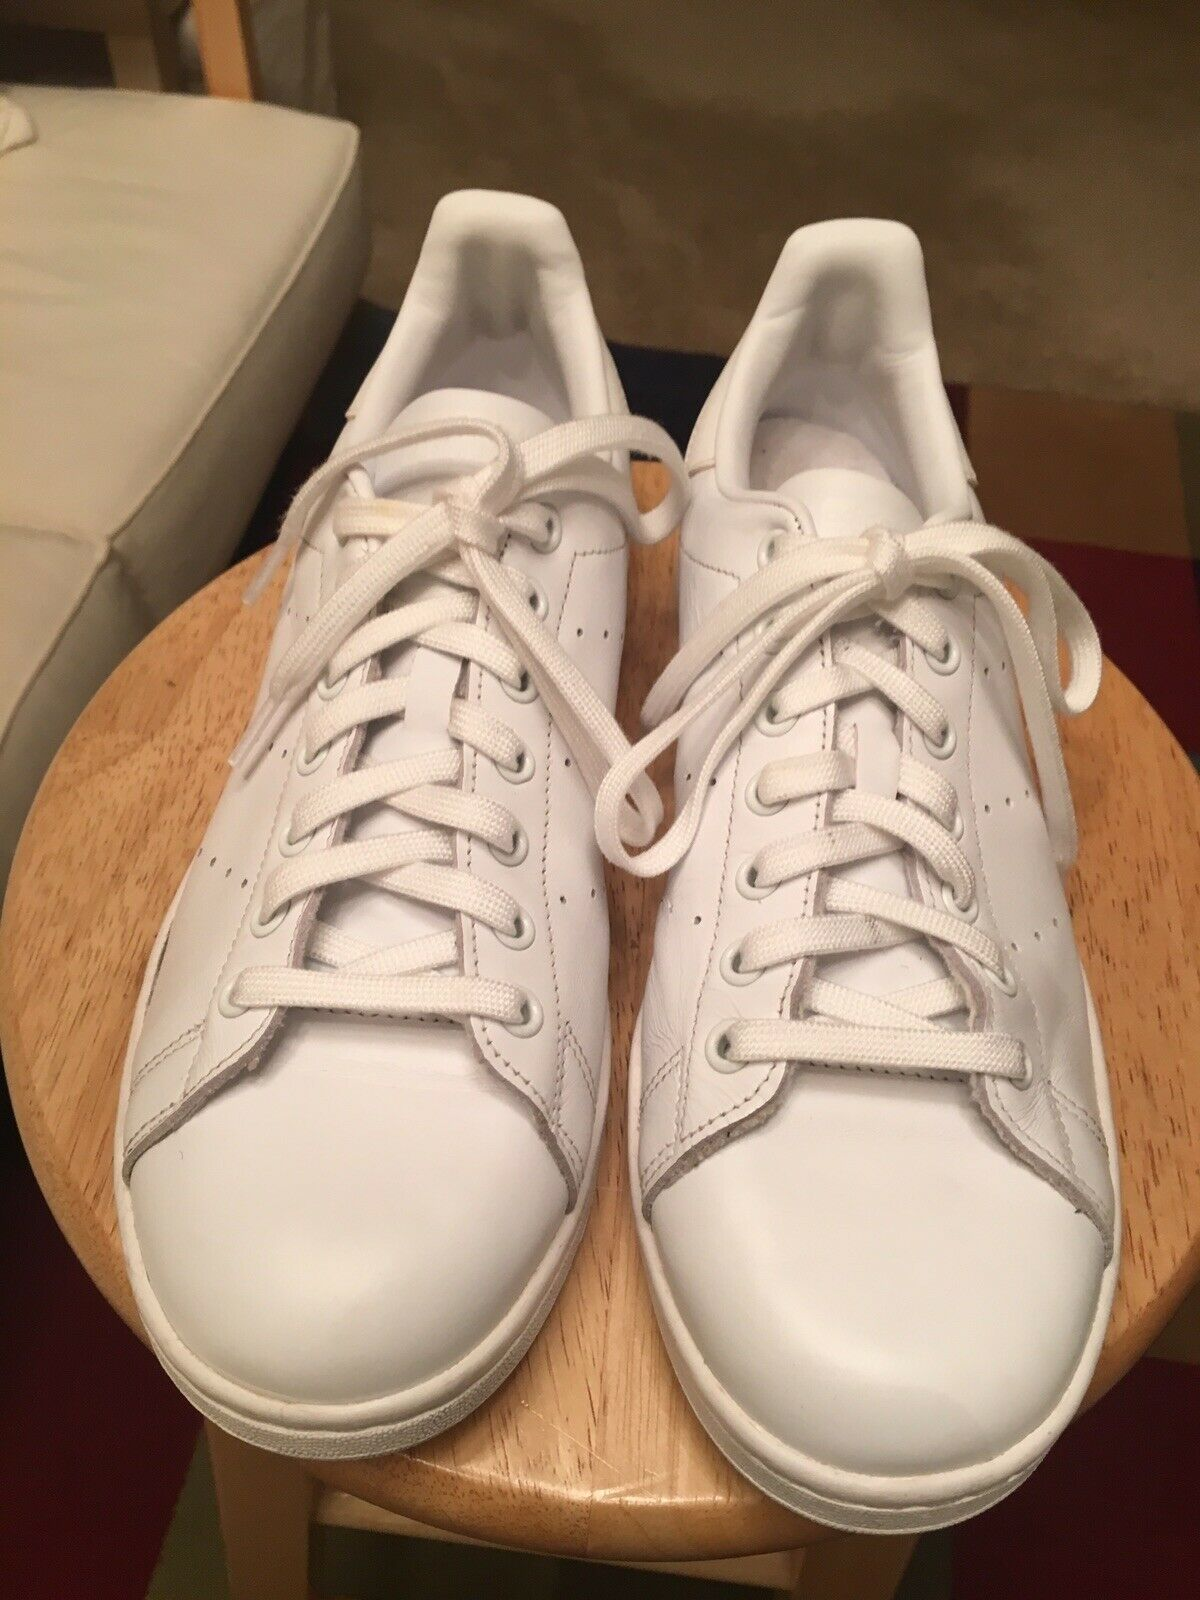 Adidas Stan Smith White US10 Leather India Athletic Sneakers shoes